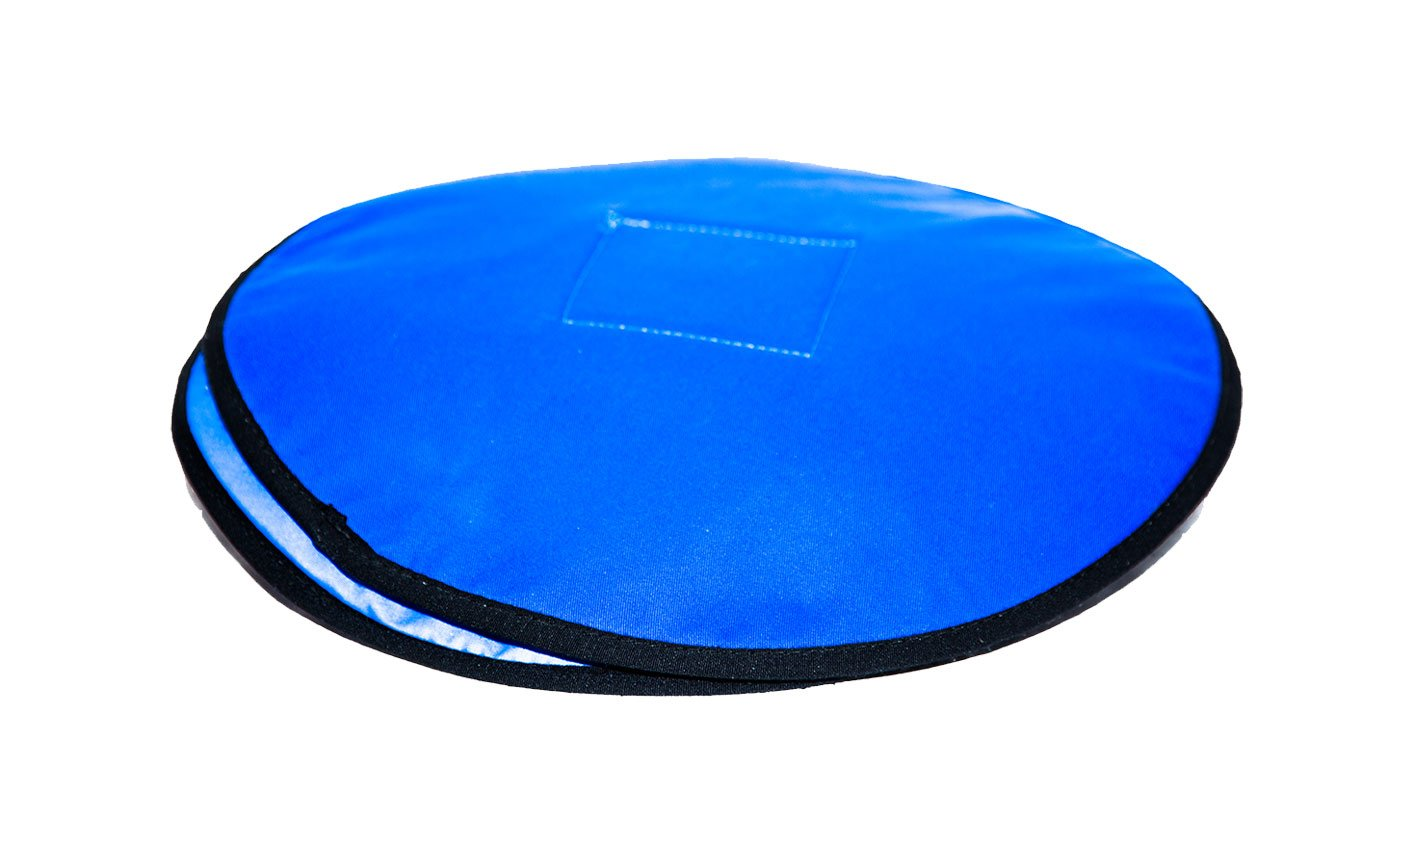 blue rota cushion for manual handling equipment.